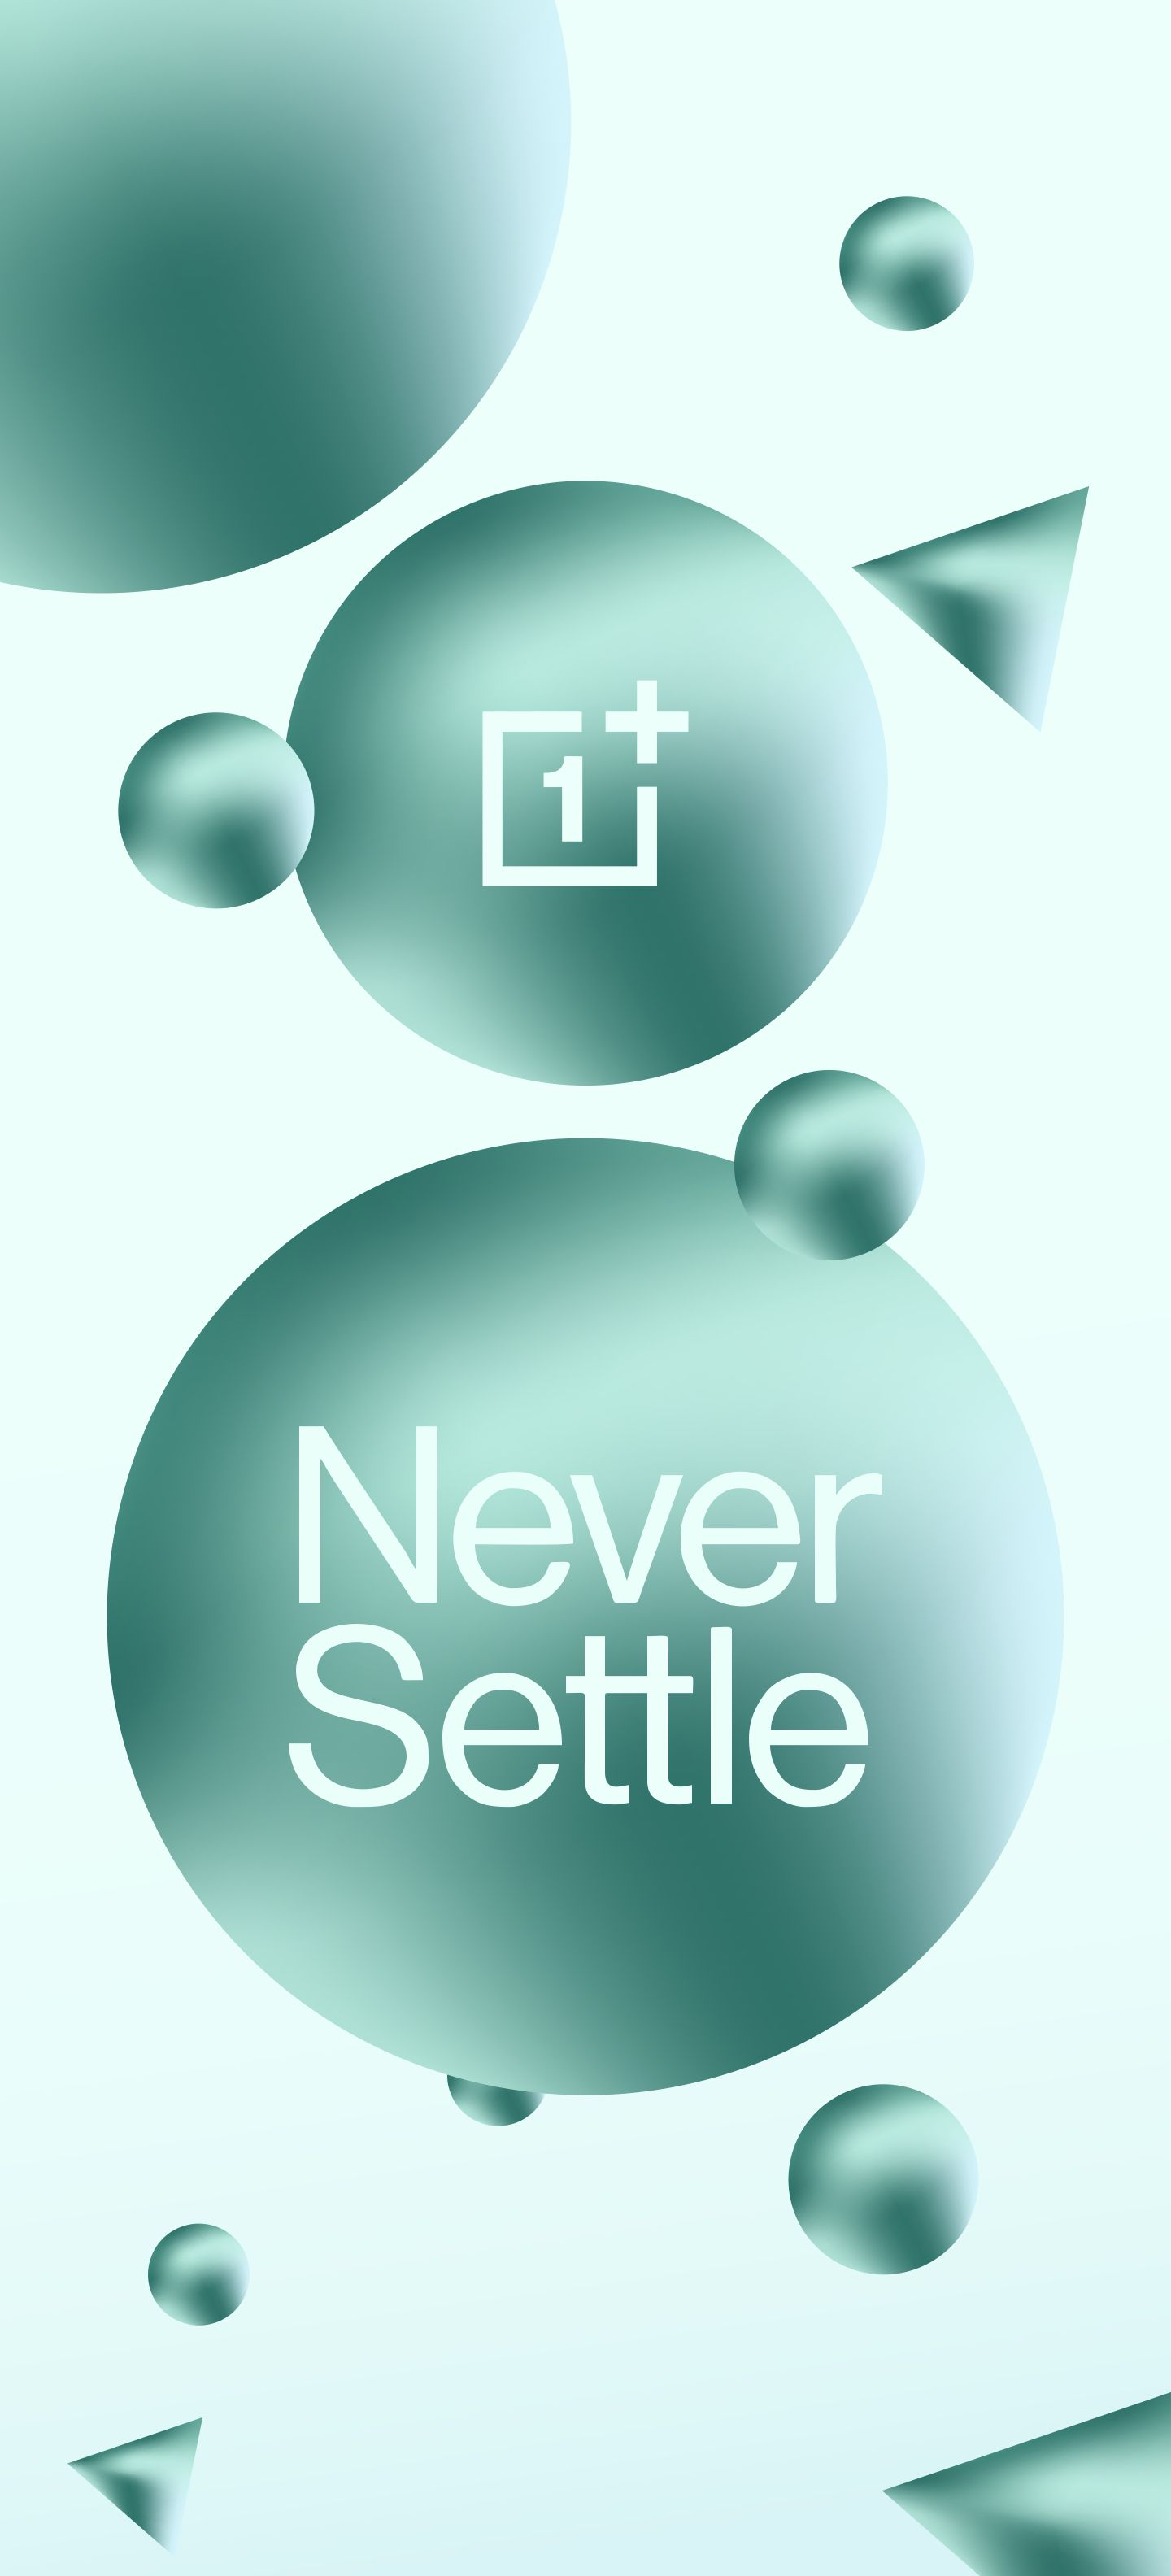 OnePlus 8 Pro Wallpaper 18 - by Rakesh Thakur.jpg